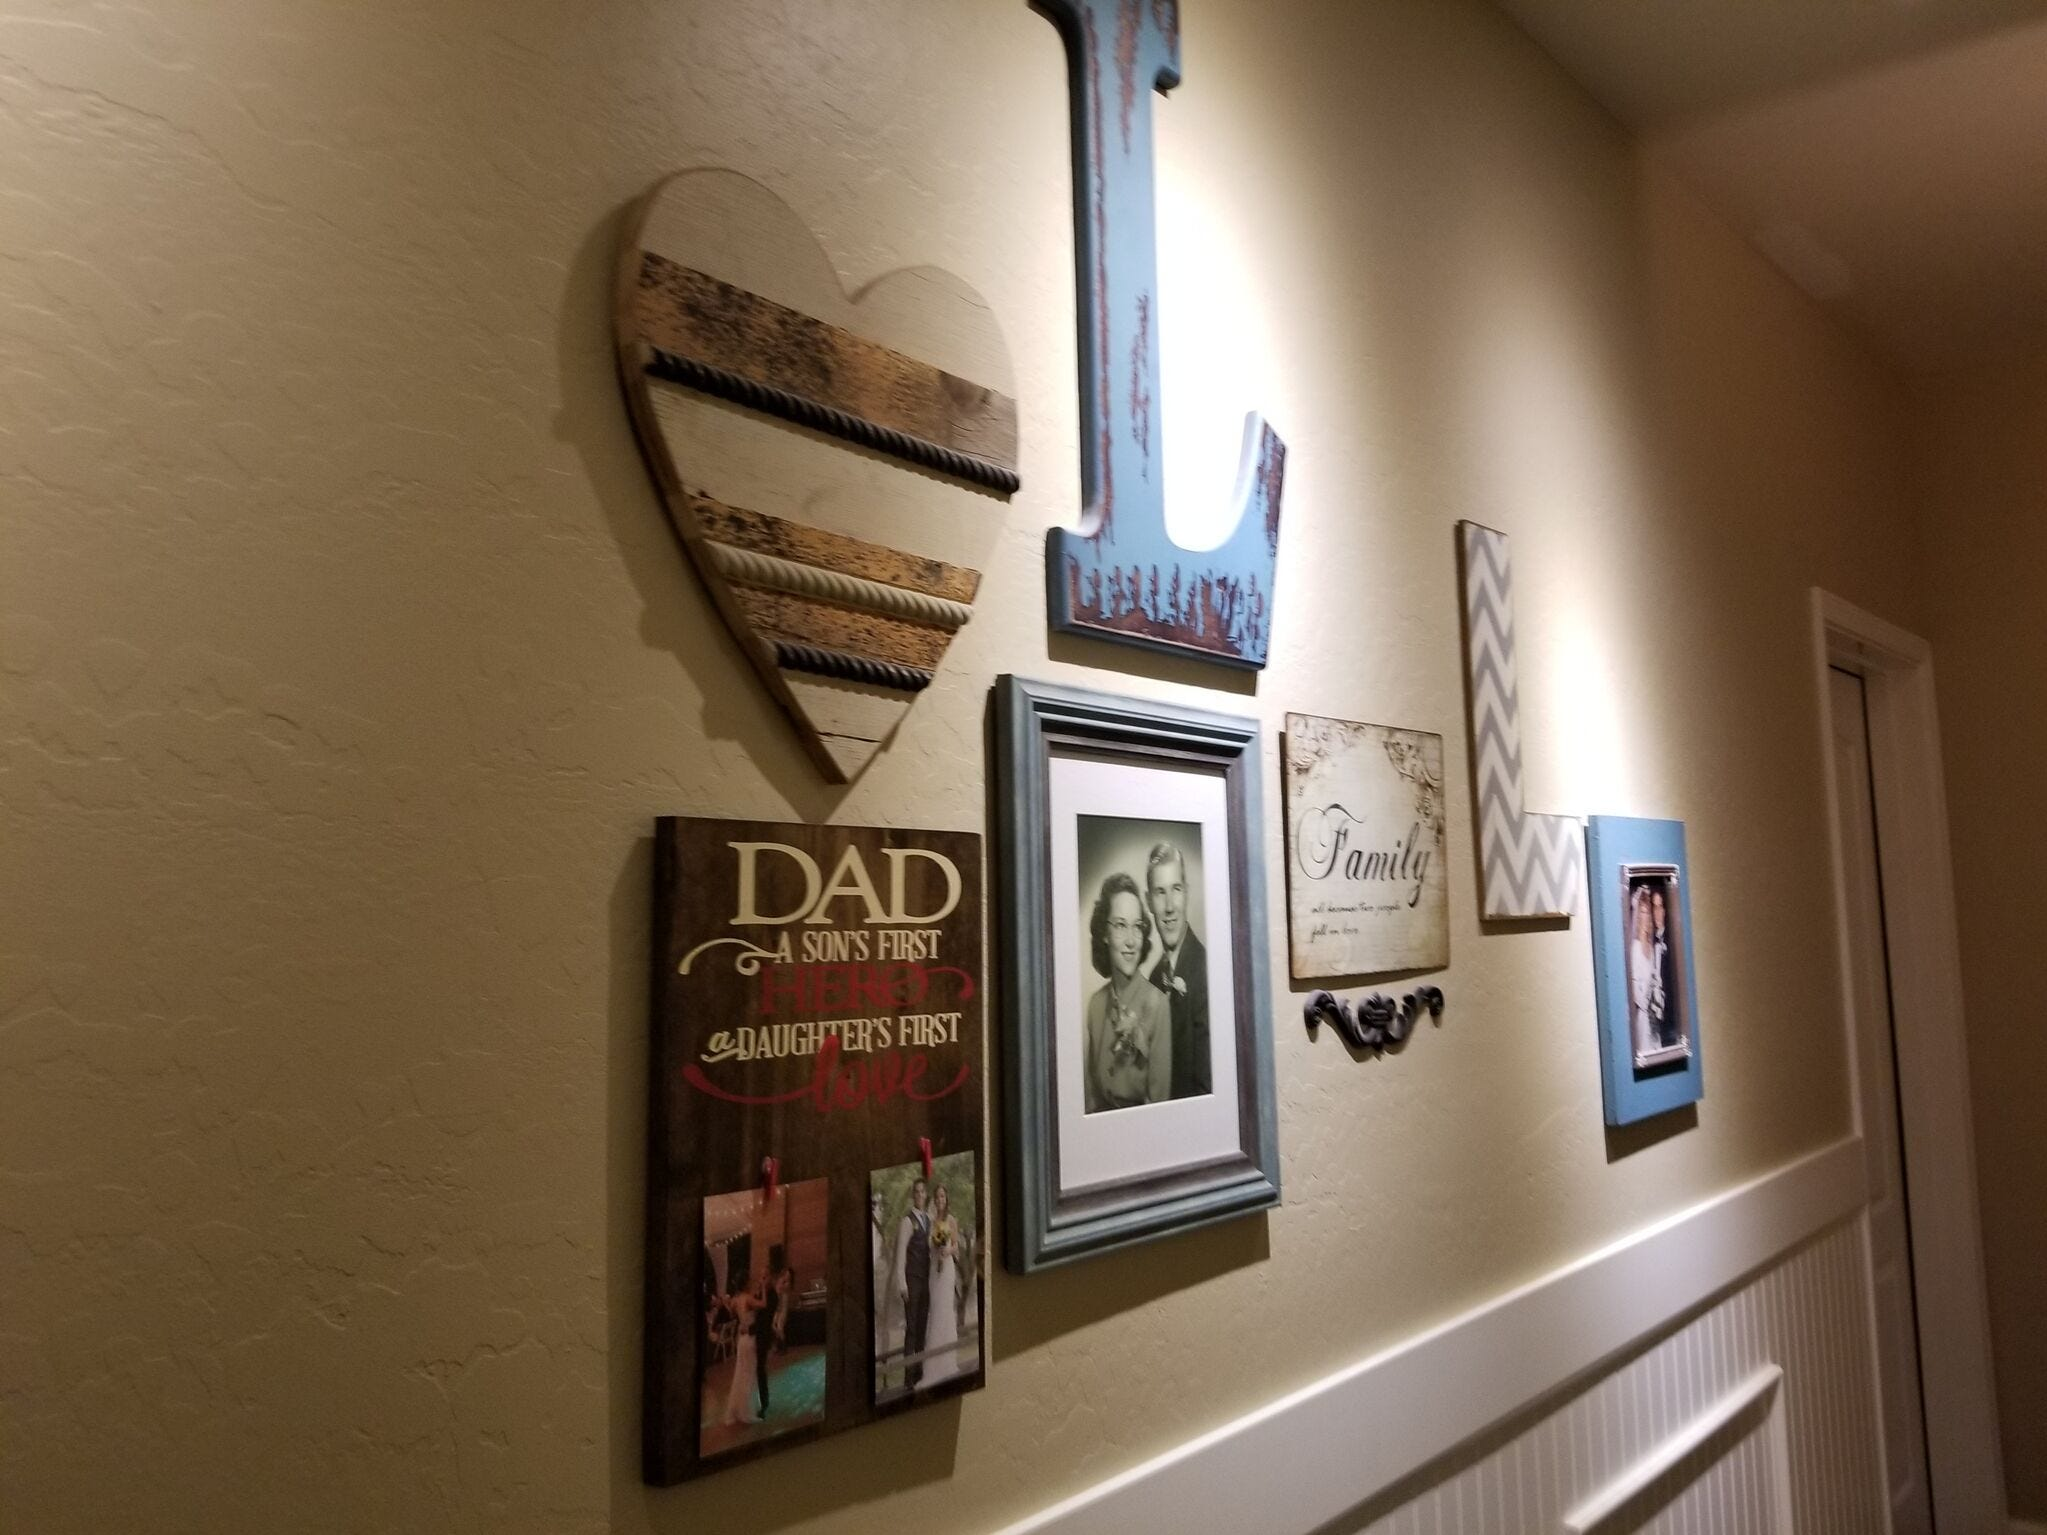 A grouping of family photos hangs on the wall.